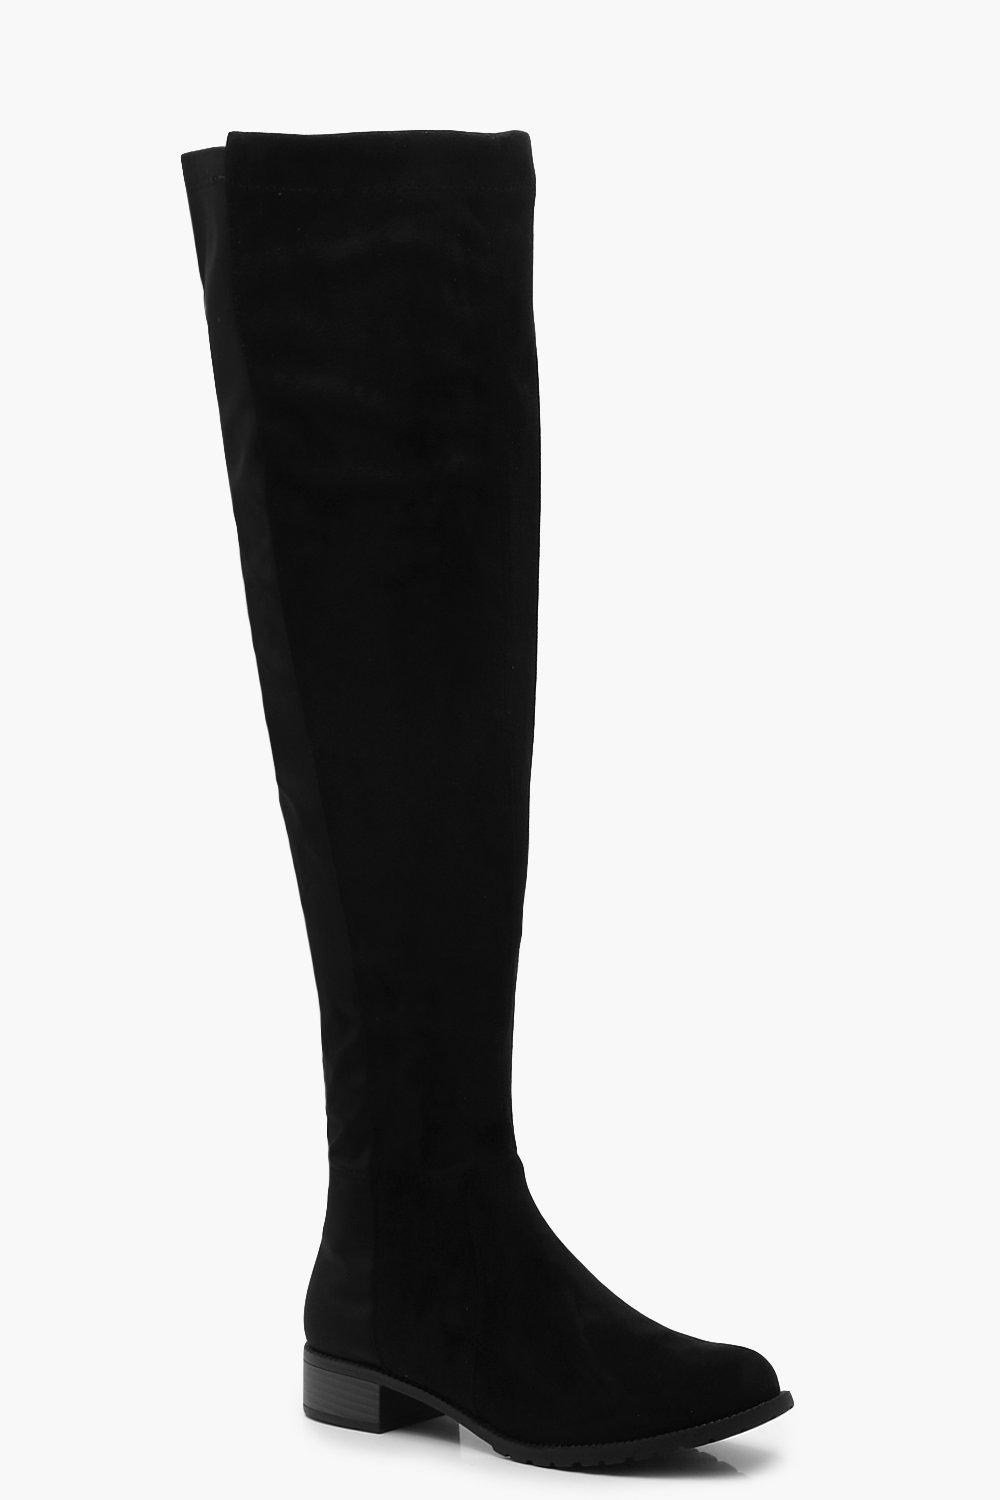 9ec4cd65185 Wider Calf Flat Knee High Boots. Hover to zoom